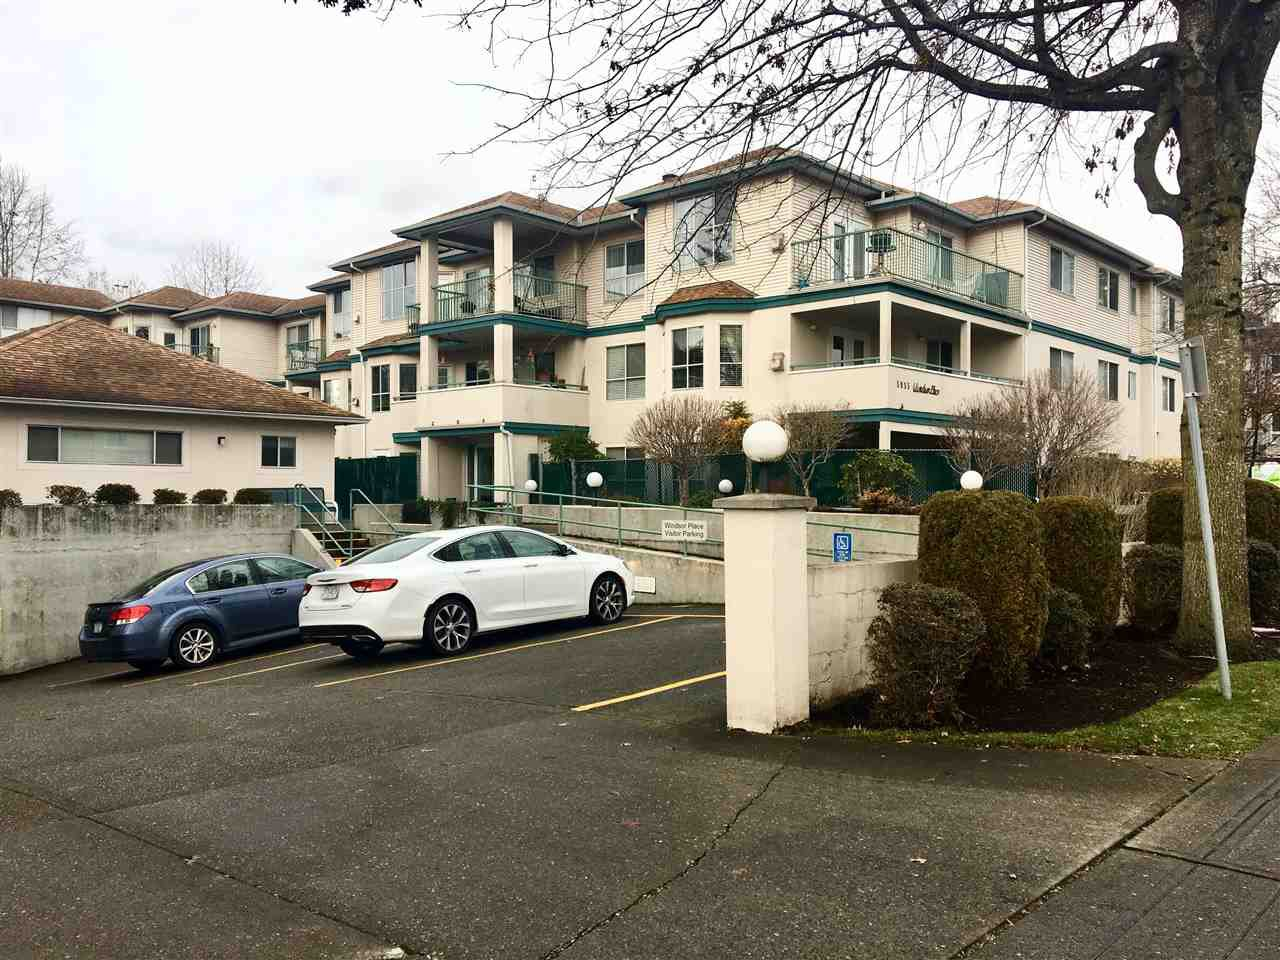 """Main Photo: 302 5955 177B Street in Surrey: Cloverdale BC Condo for sale in """"WINDSOR PLACE"""" (Cloverdale)  : MLS®# R2334510"""